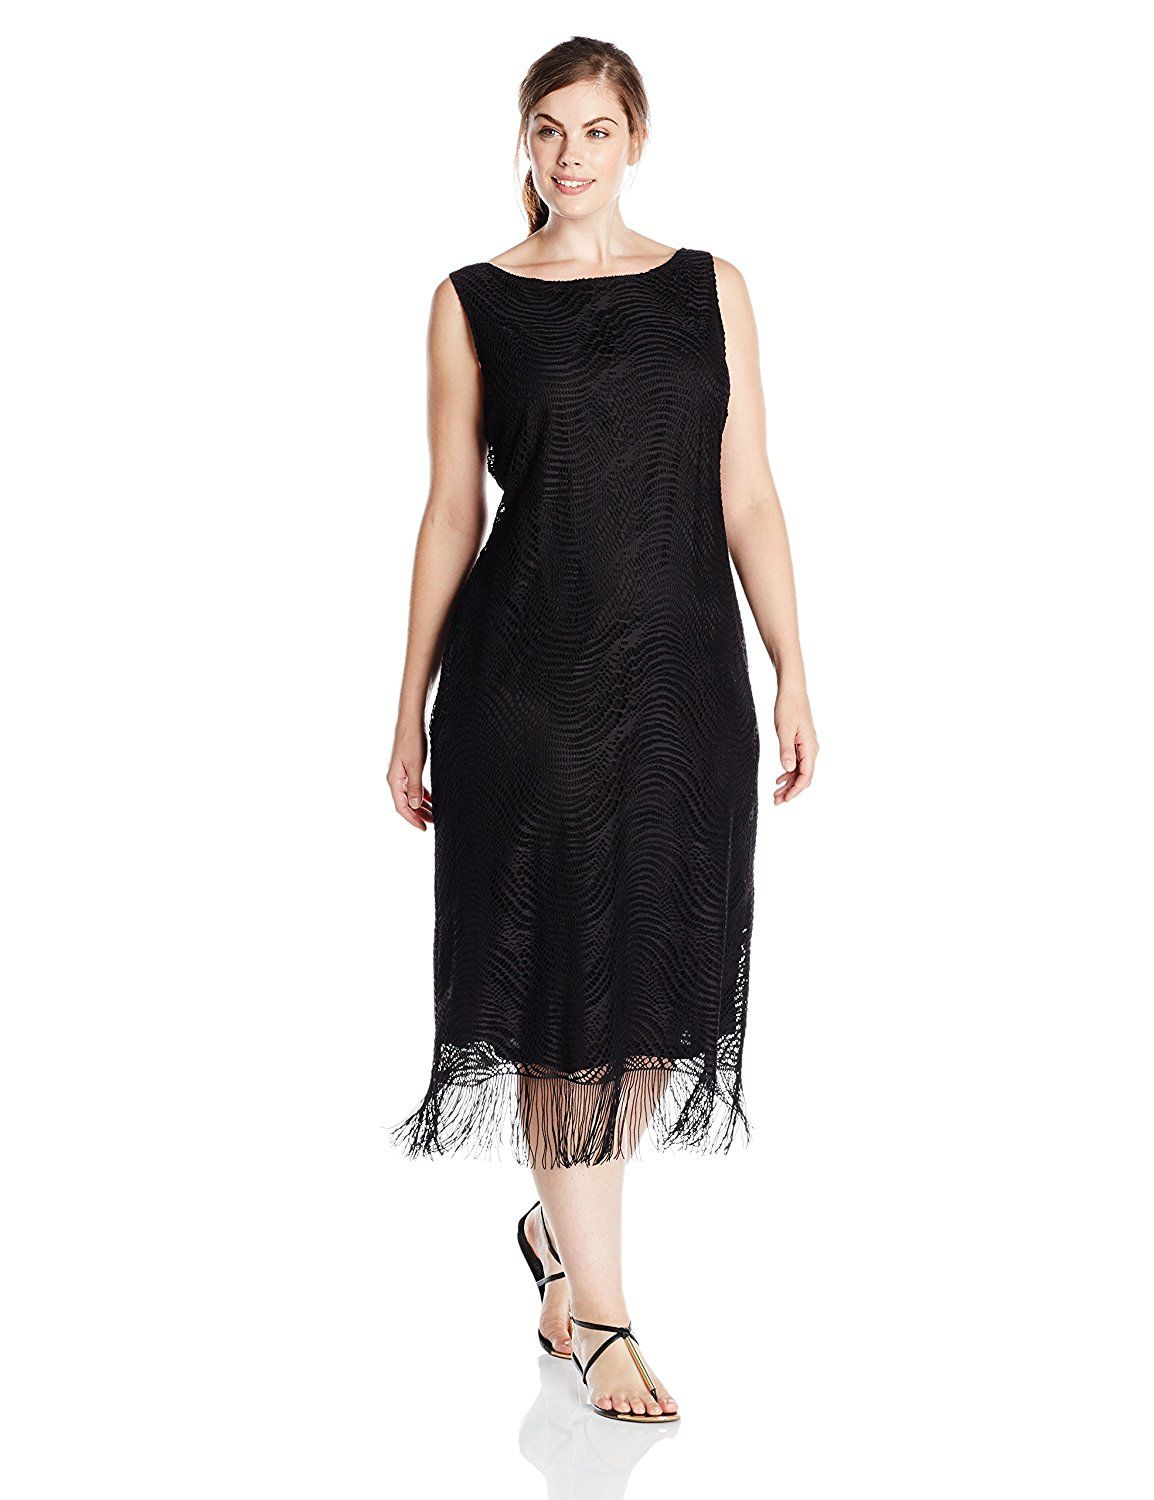 56625da07b1 Tiana B Women s Plus-Size Sleeveless Fringe Crochet Lace Maxi and Tie At  Waist   To view further